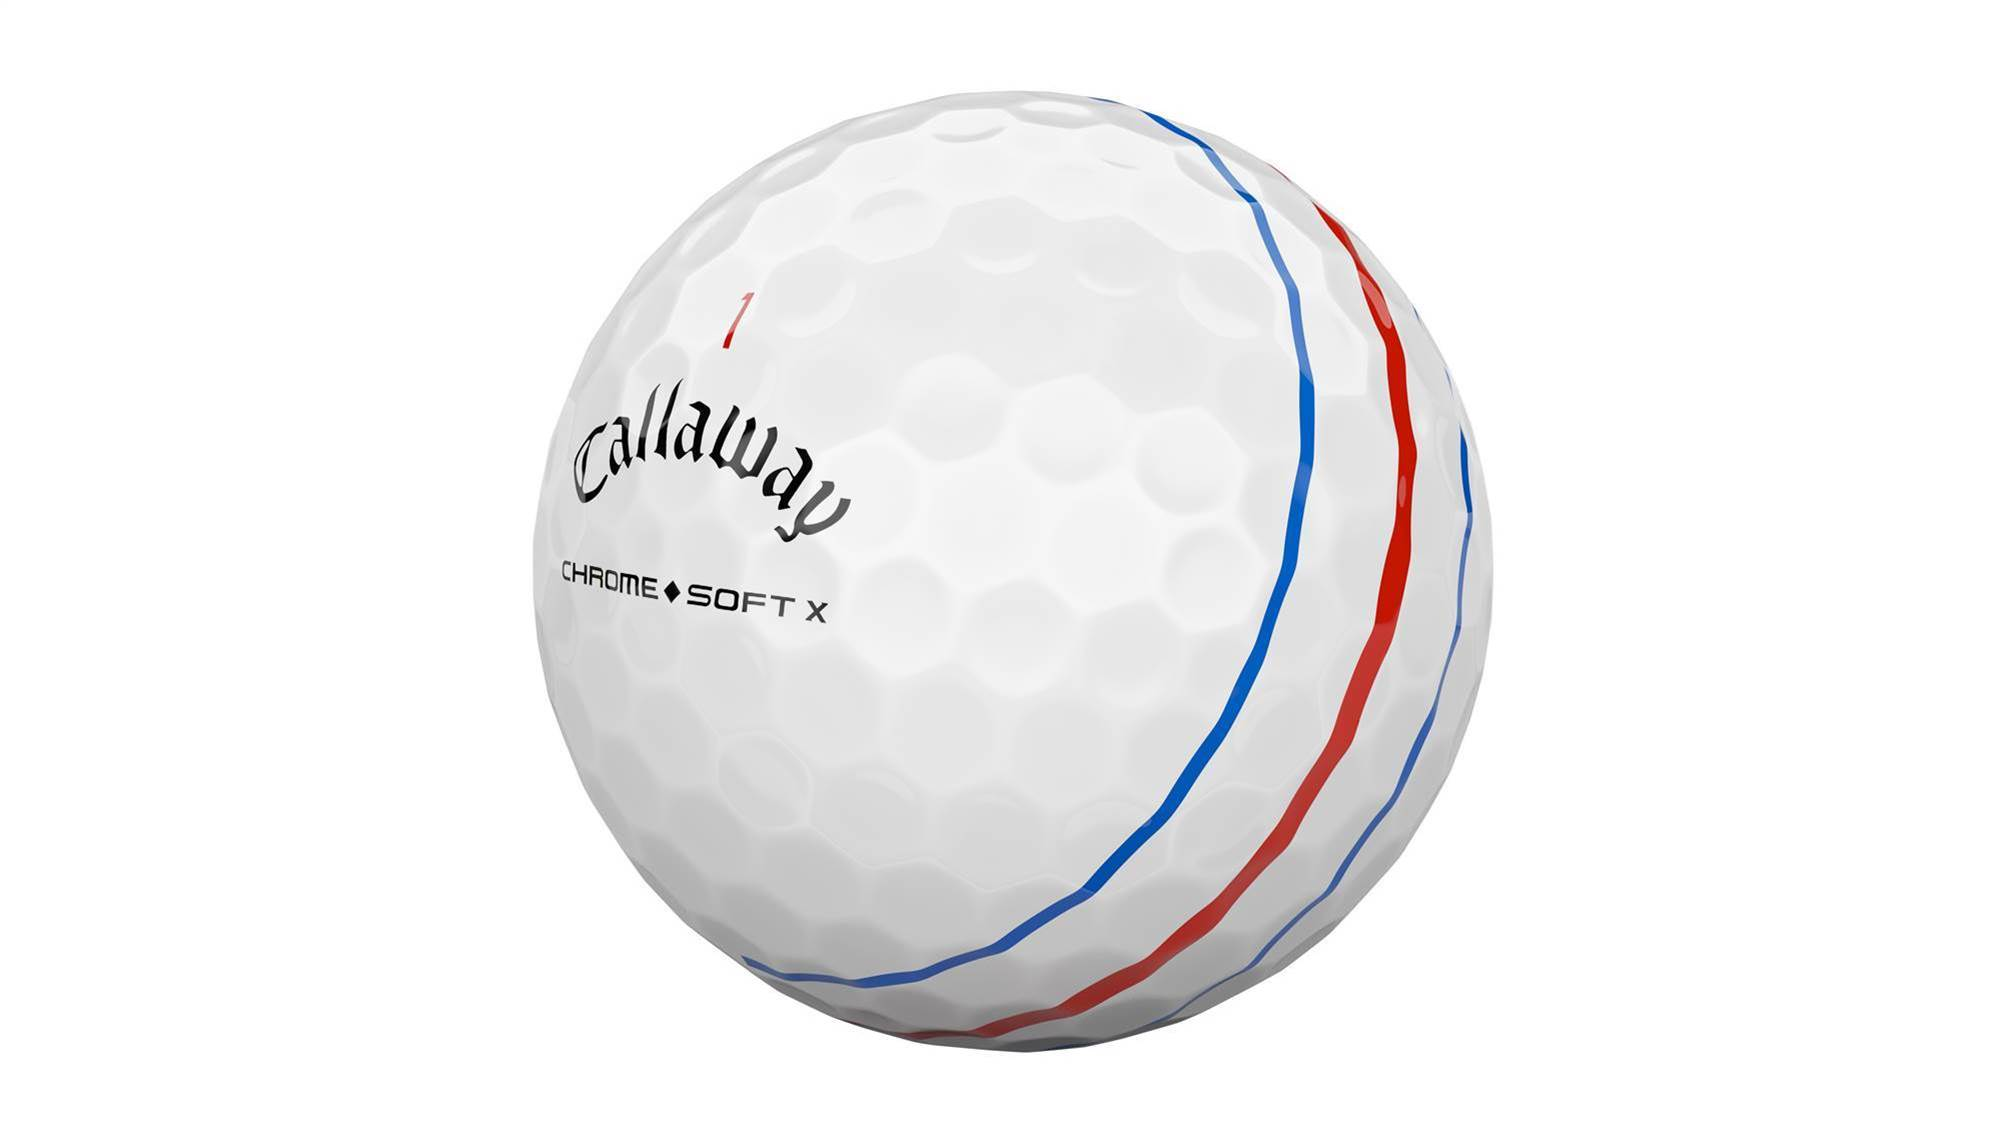 Callaway adds Triple Track to Chrome Soft X